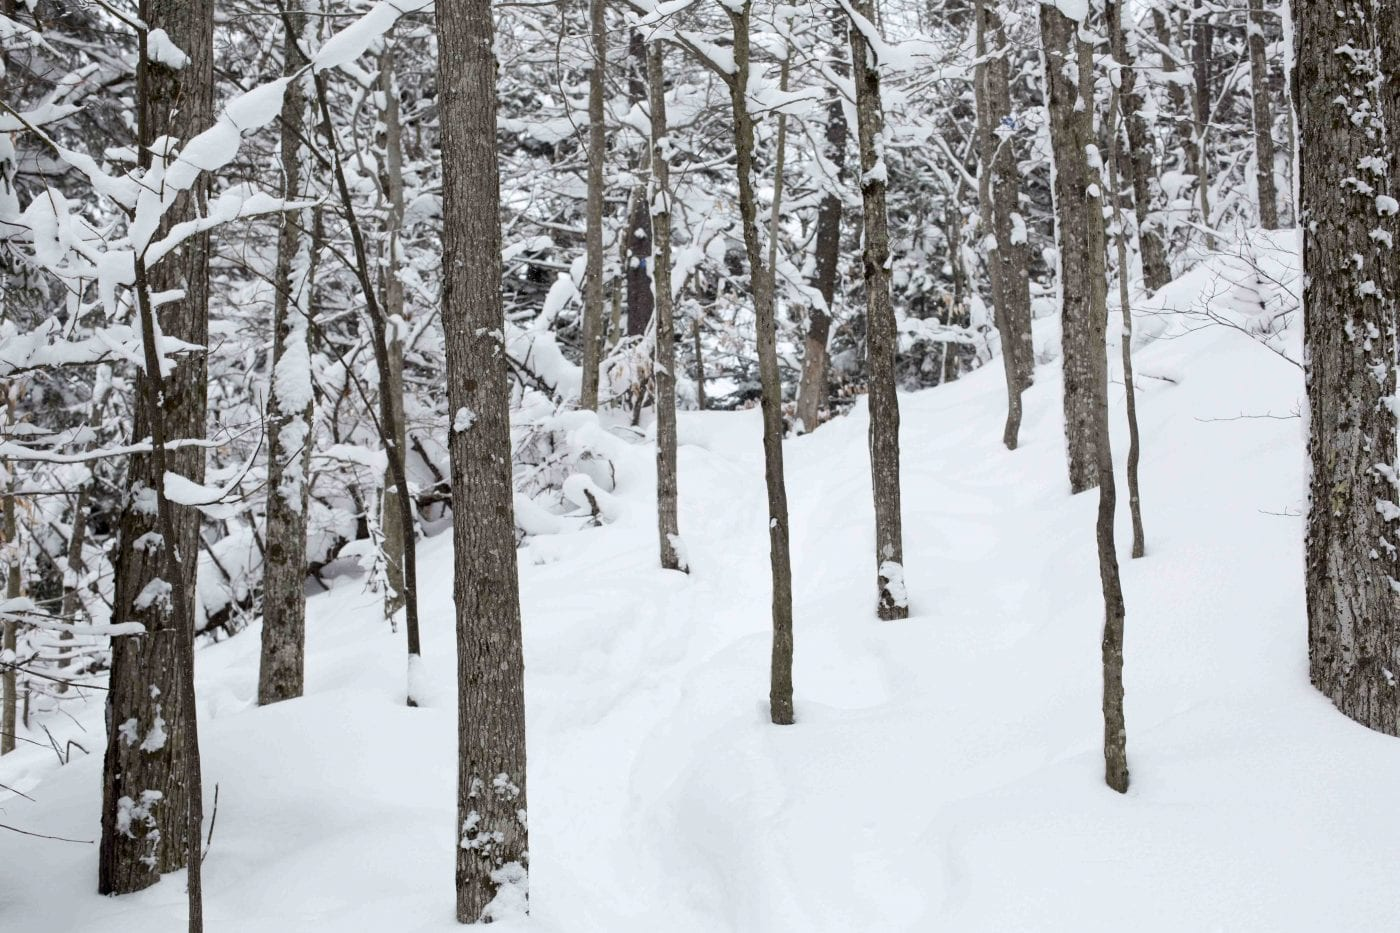 Winter hiking food tips for beginners